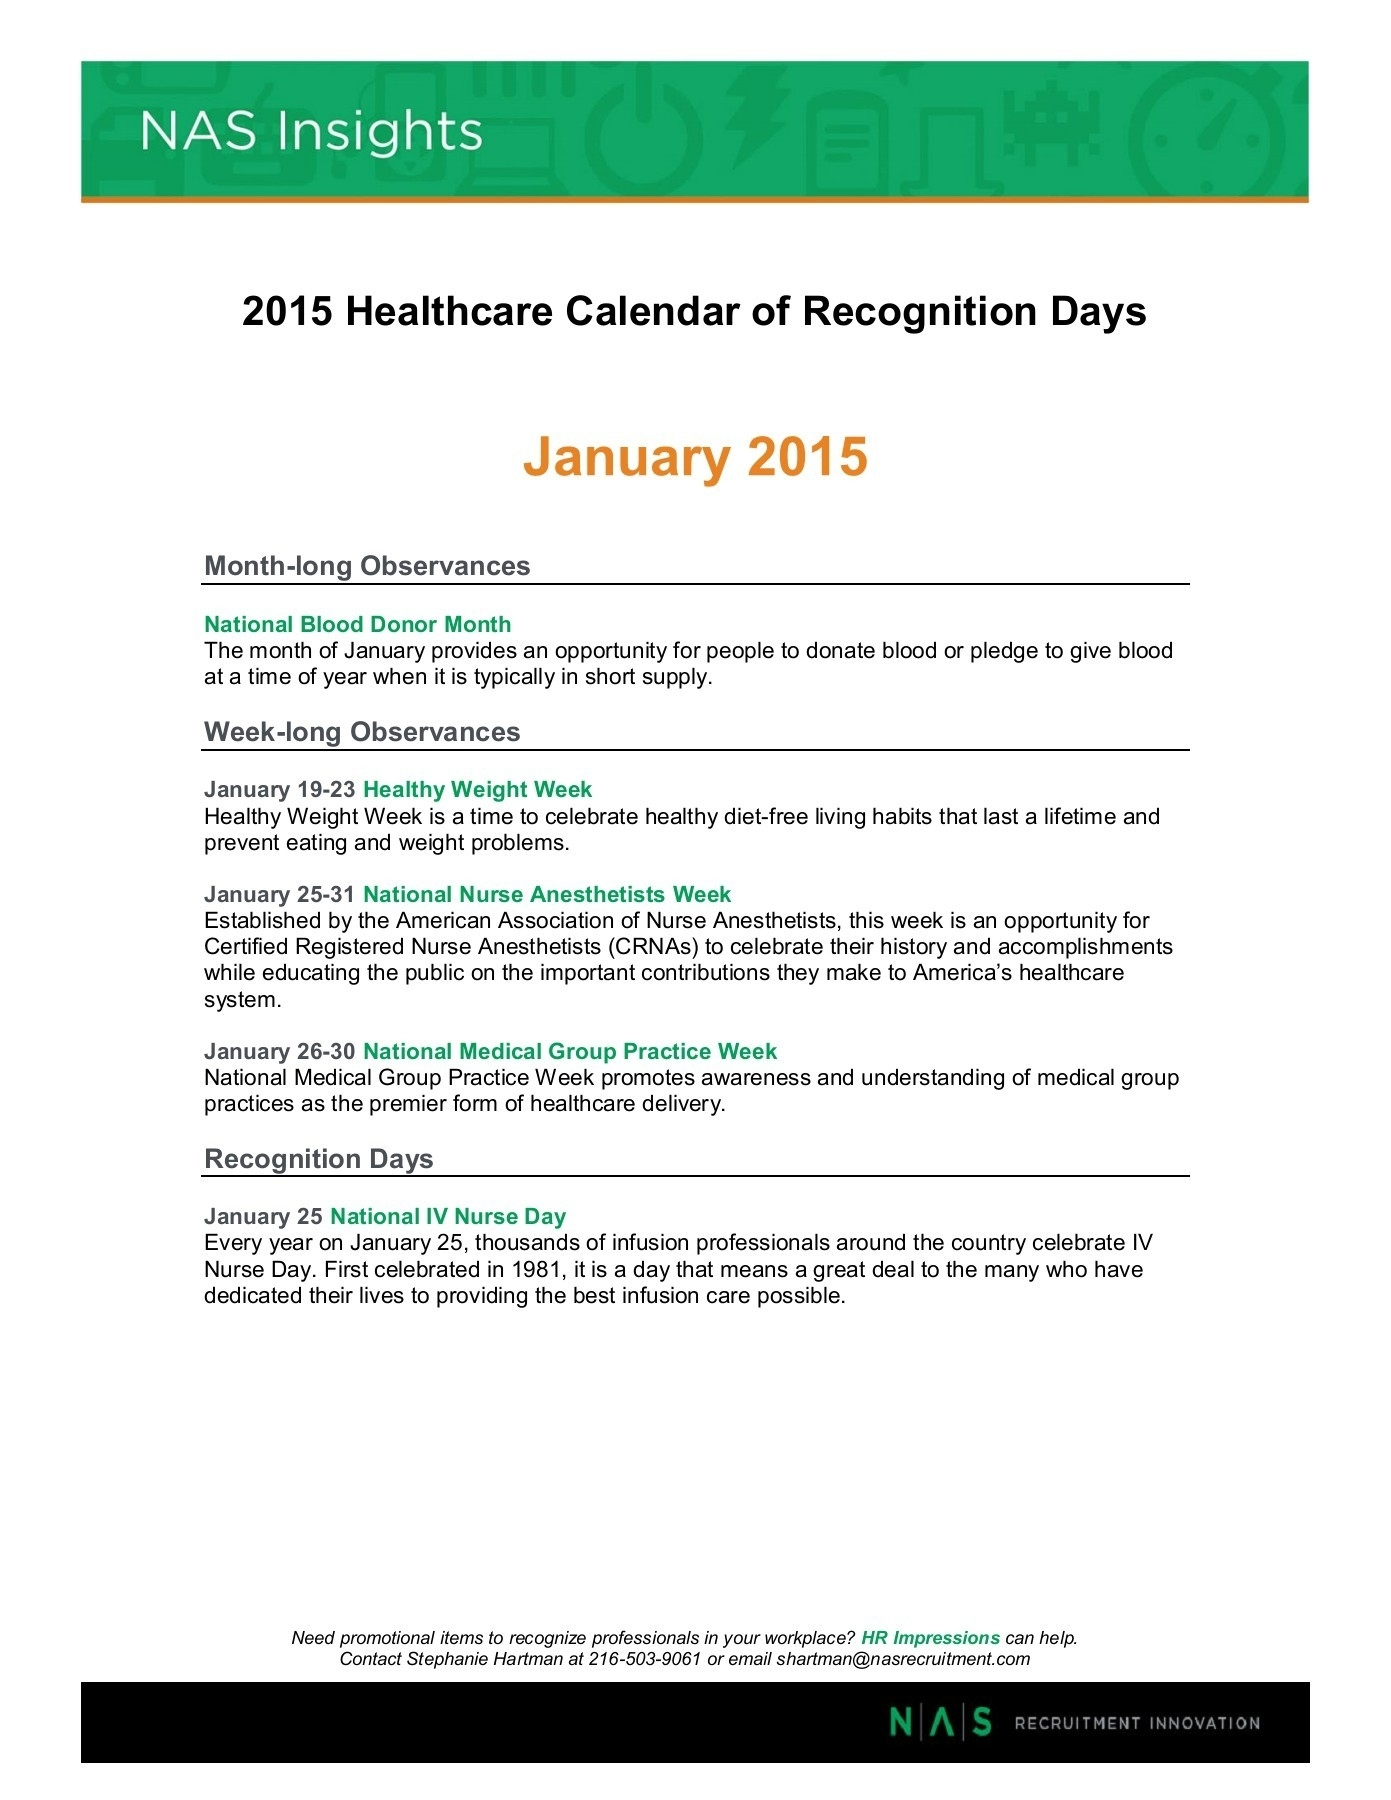 2015 Healthcare Calendar Of Recognition Days Pages 1 - 19 - Text for Calendar Of Nursing Recognitin Days